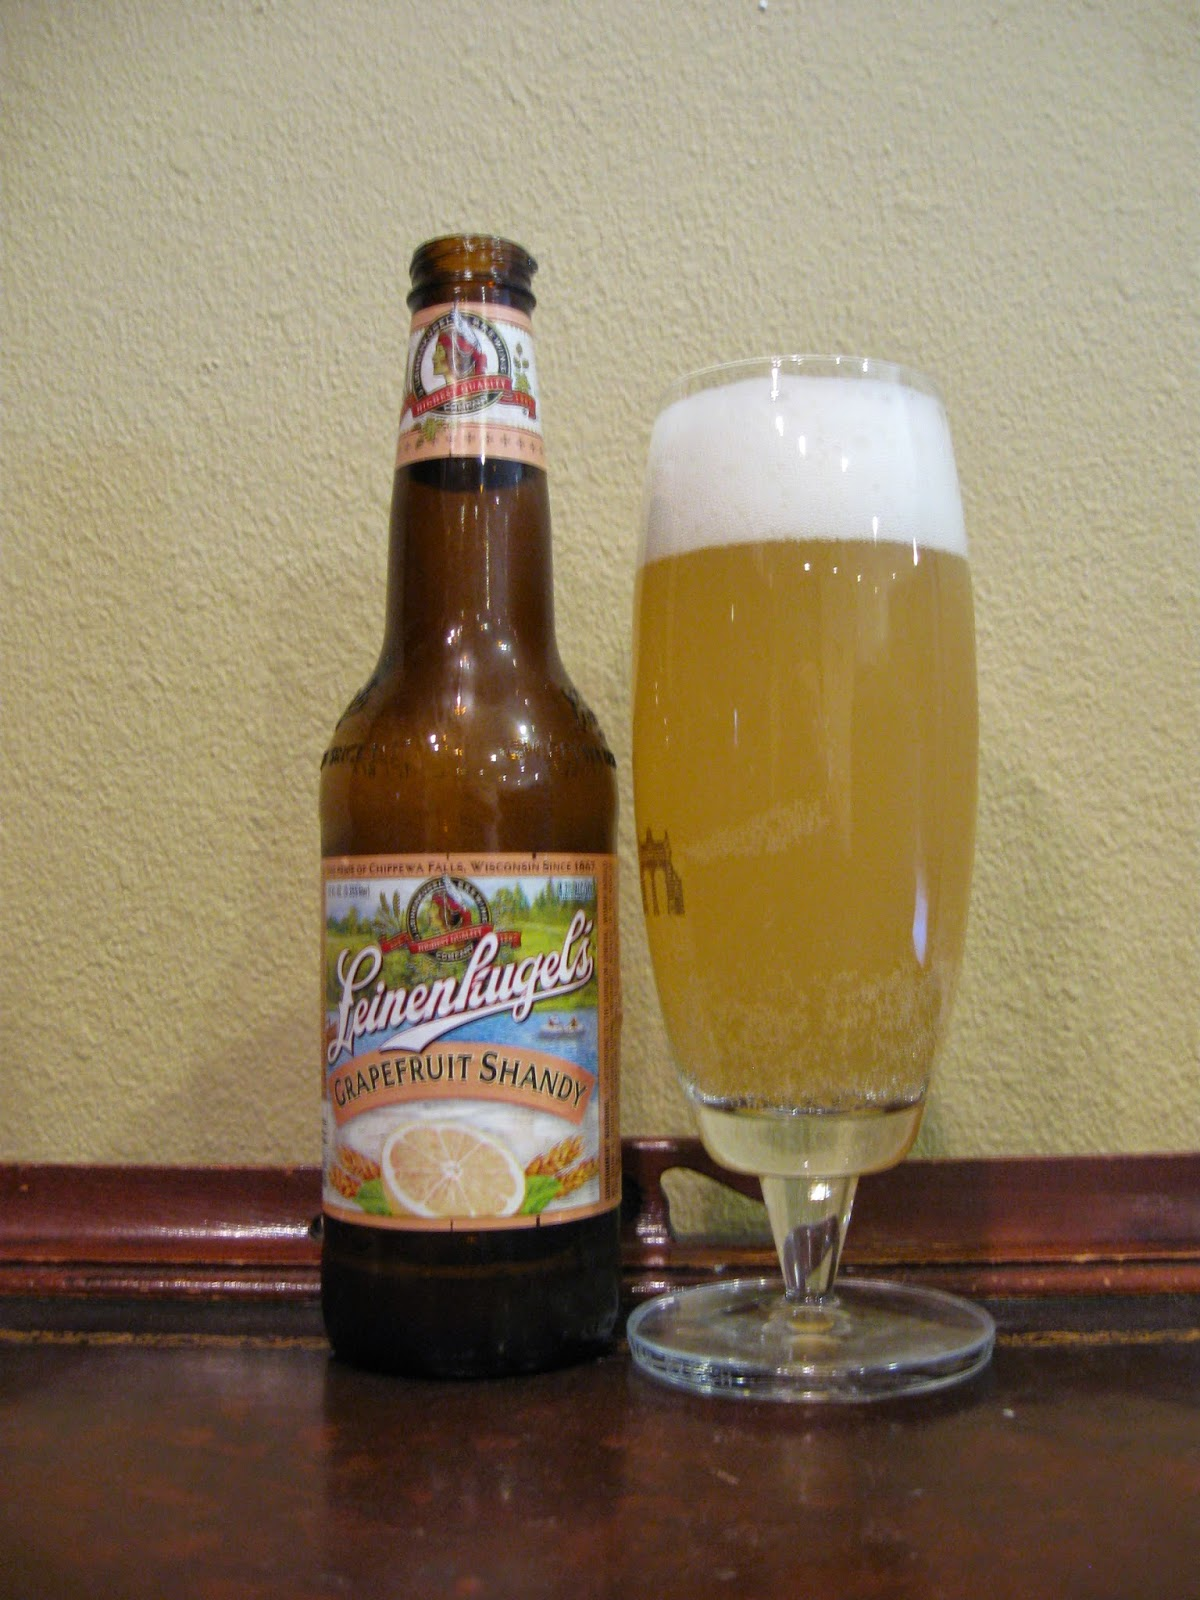 Where to buy leinenkugel s grapefruit shandy - The Taste Follows The Aromas Zesty And Tangy Grapefruit With Light Grapefruit Bitterness Over Toast It Drinks Very Easy And Refreshing